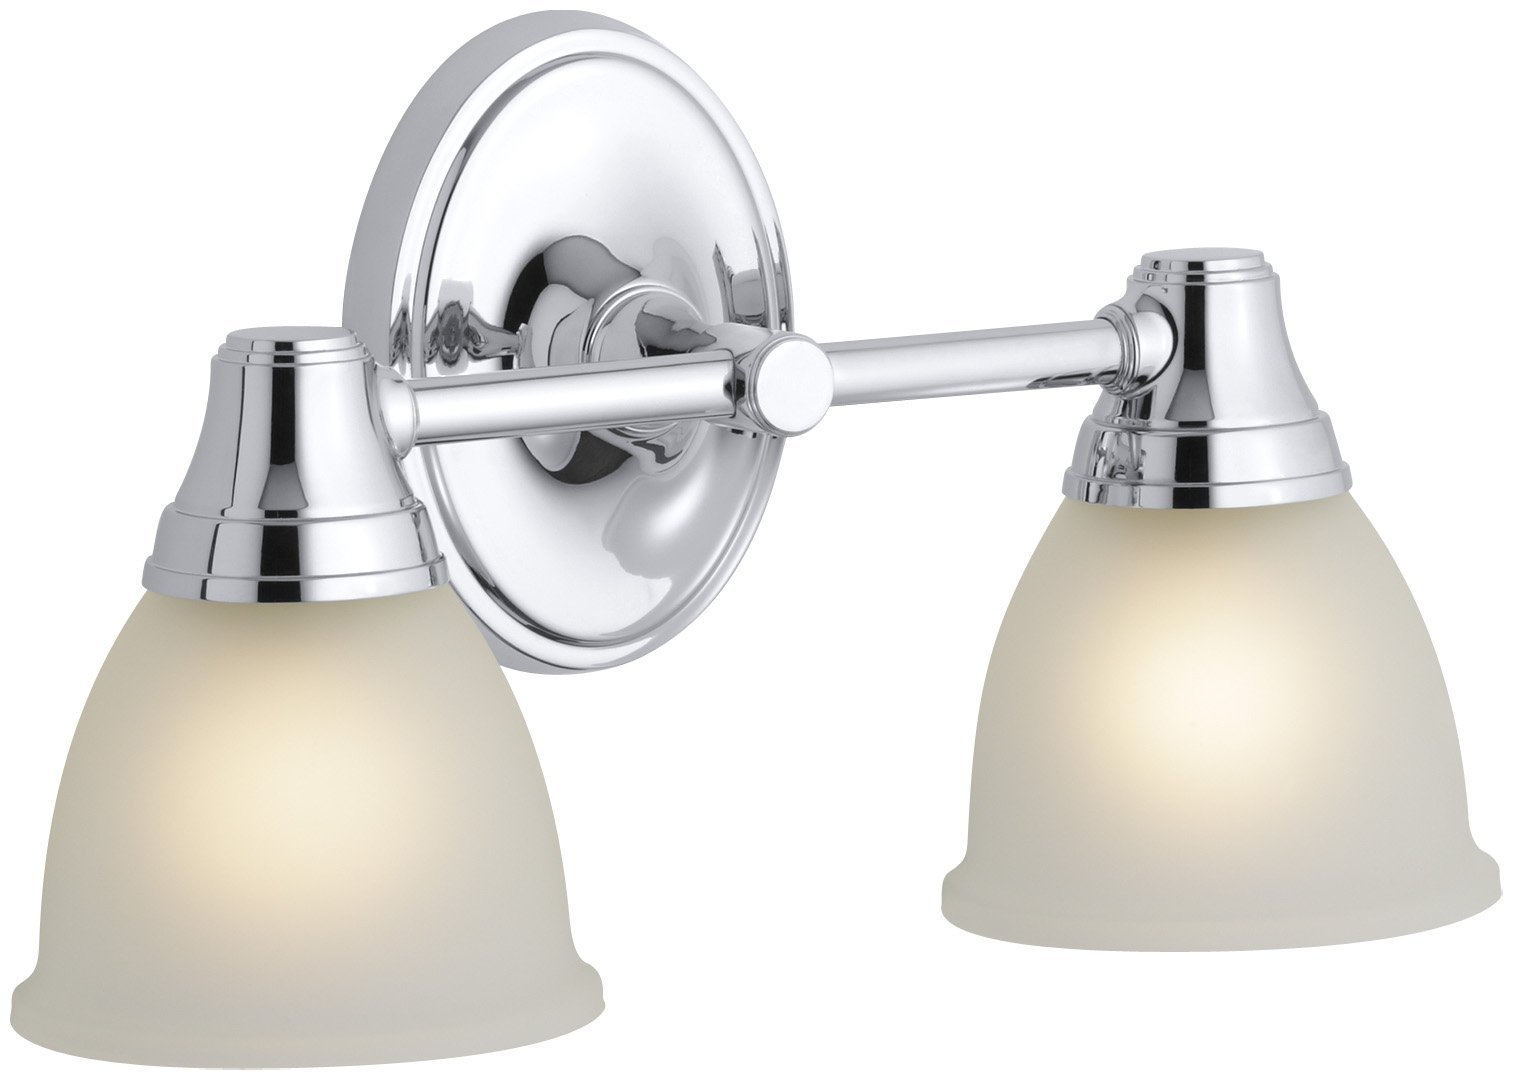 KOHLER K-11366-CP Transitional Double Wall Sconce for Forte Faucet Line, Polished Chrome by Kohler